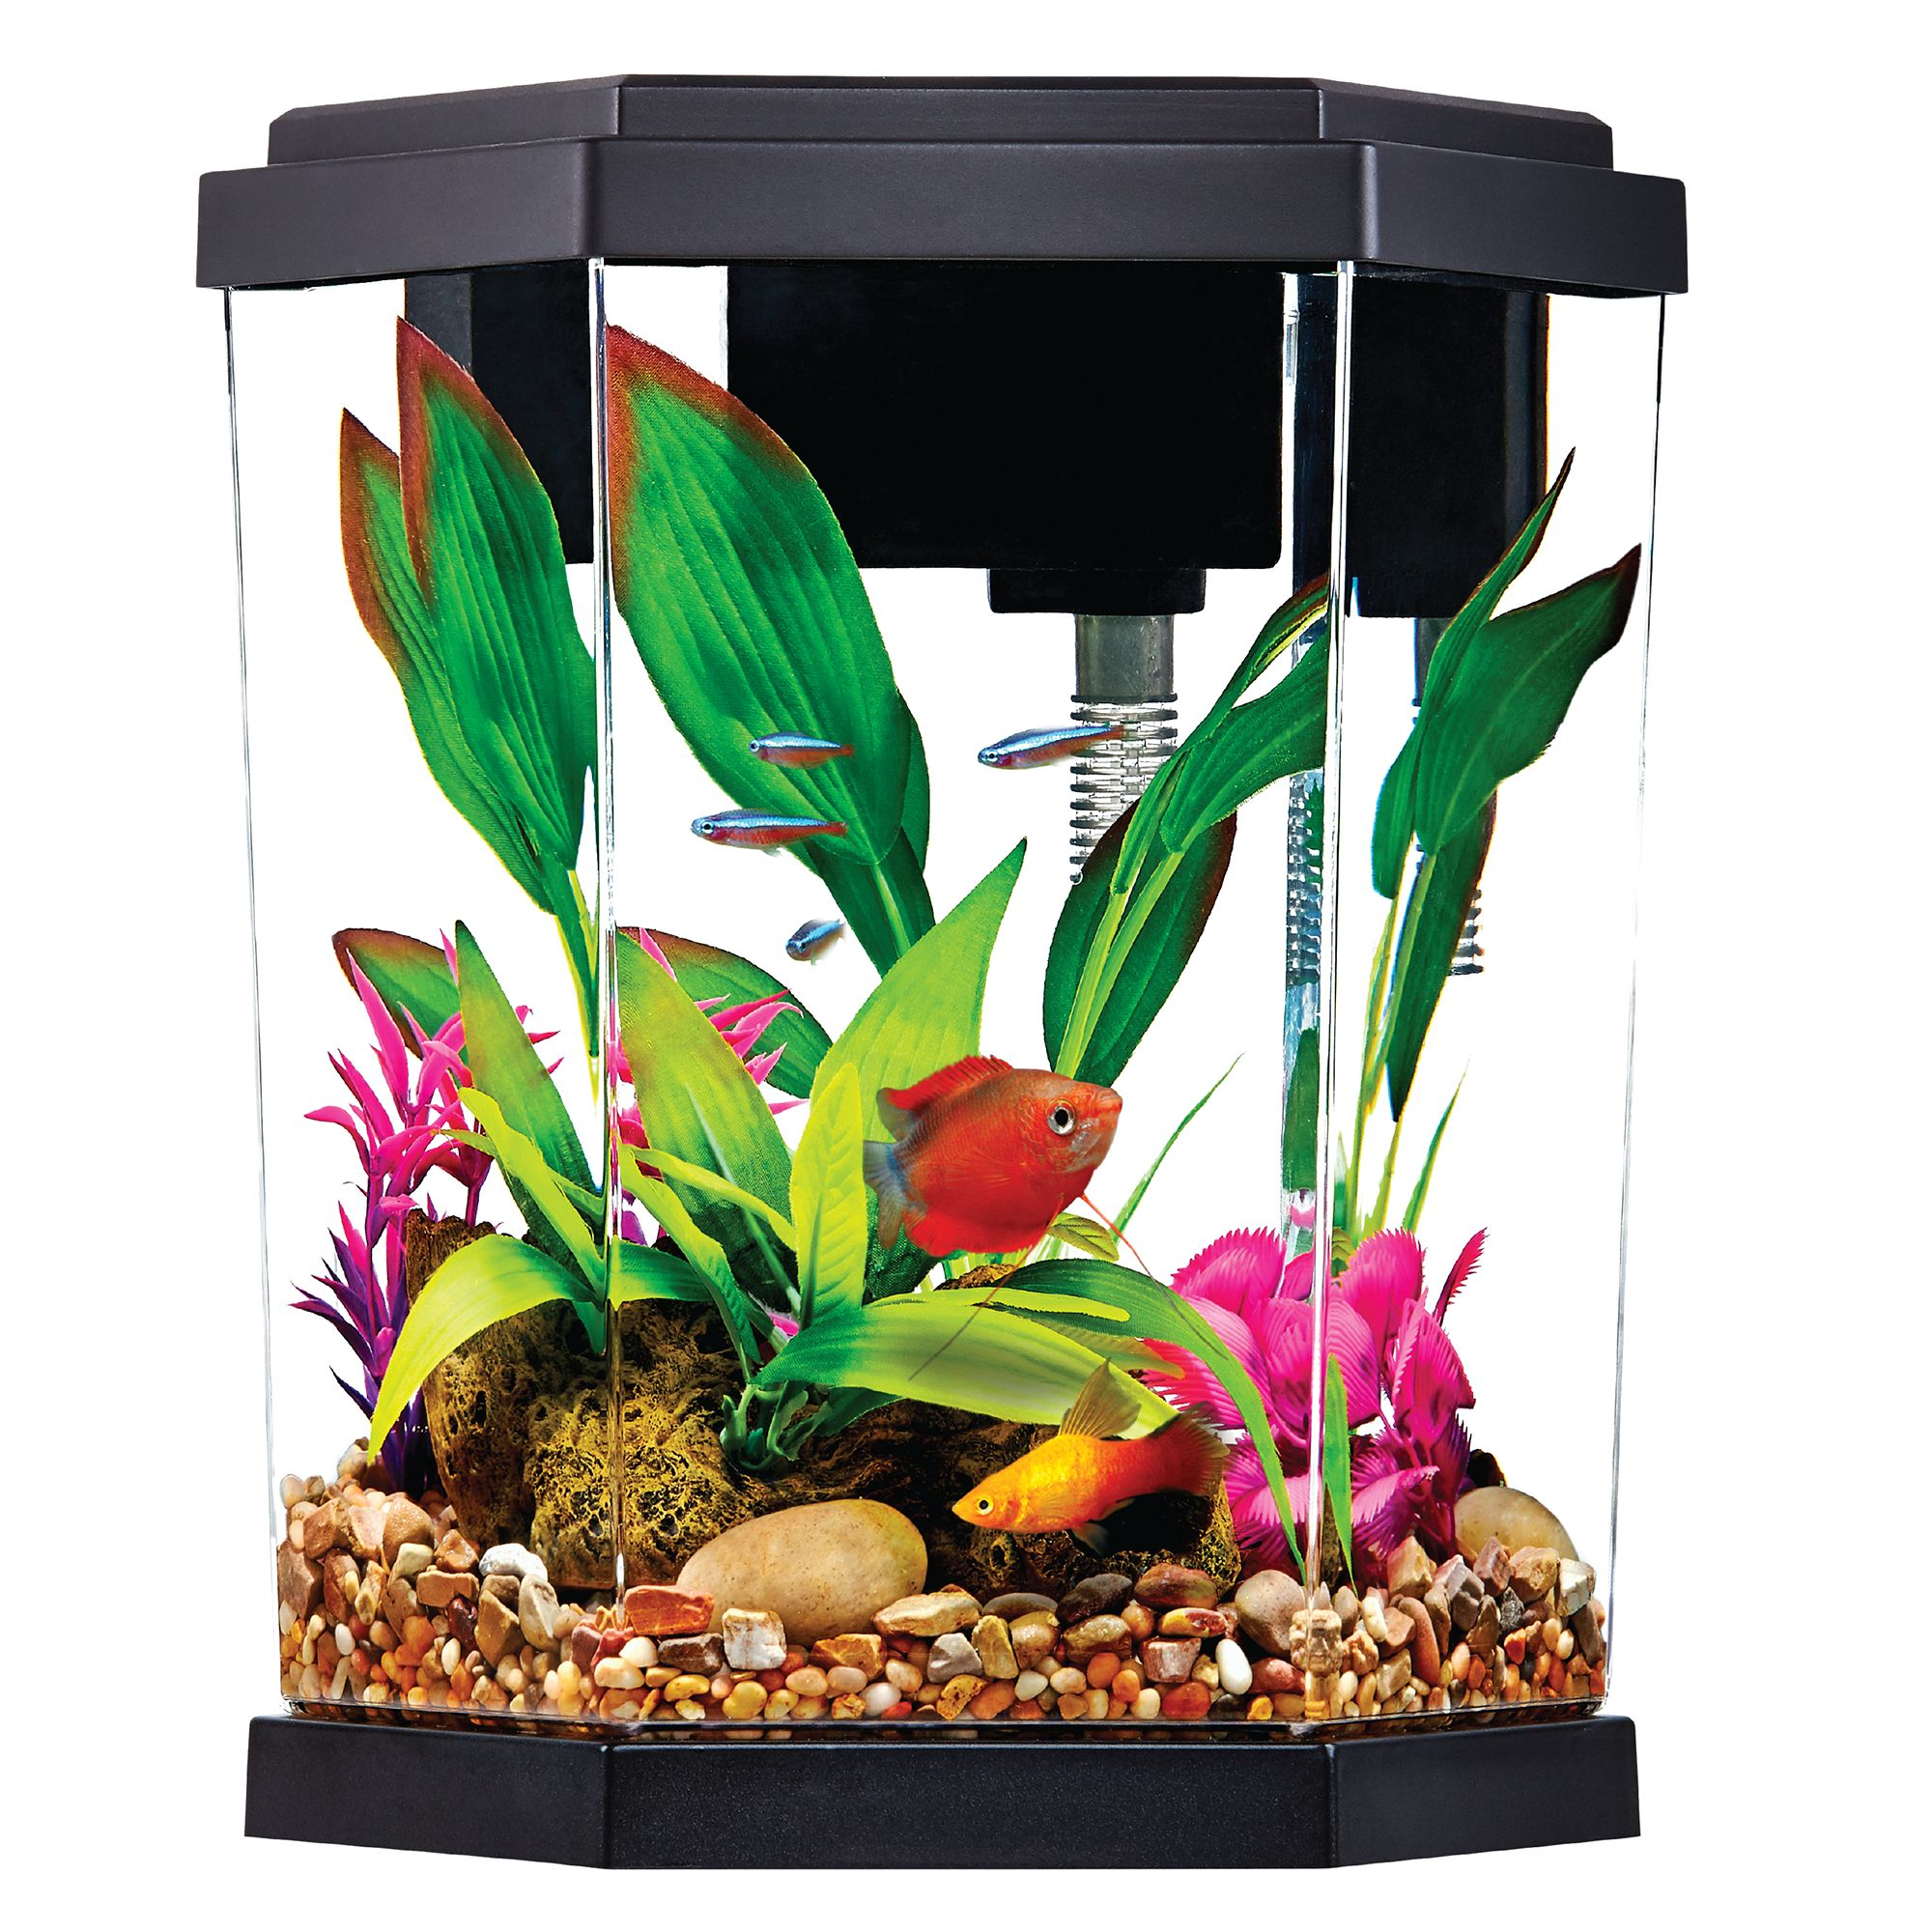 Marina deluxe aquarium kit size 20 gallons for 20 gallon fish tank kit